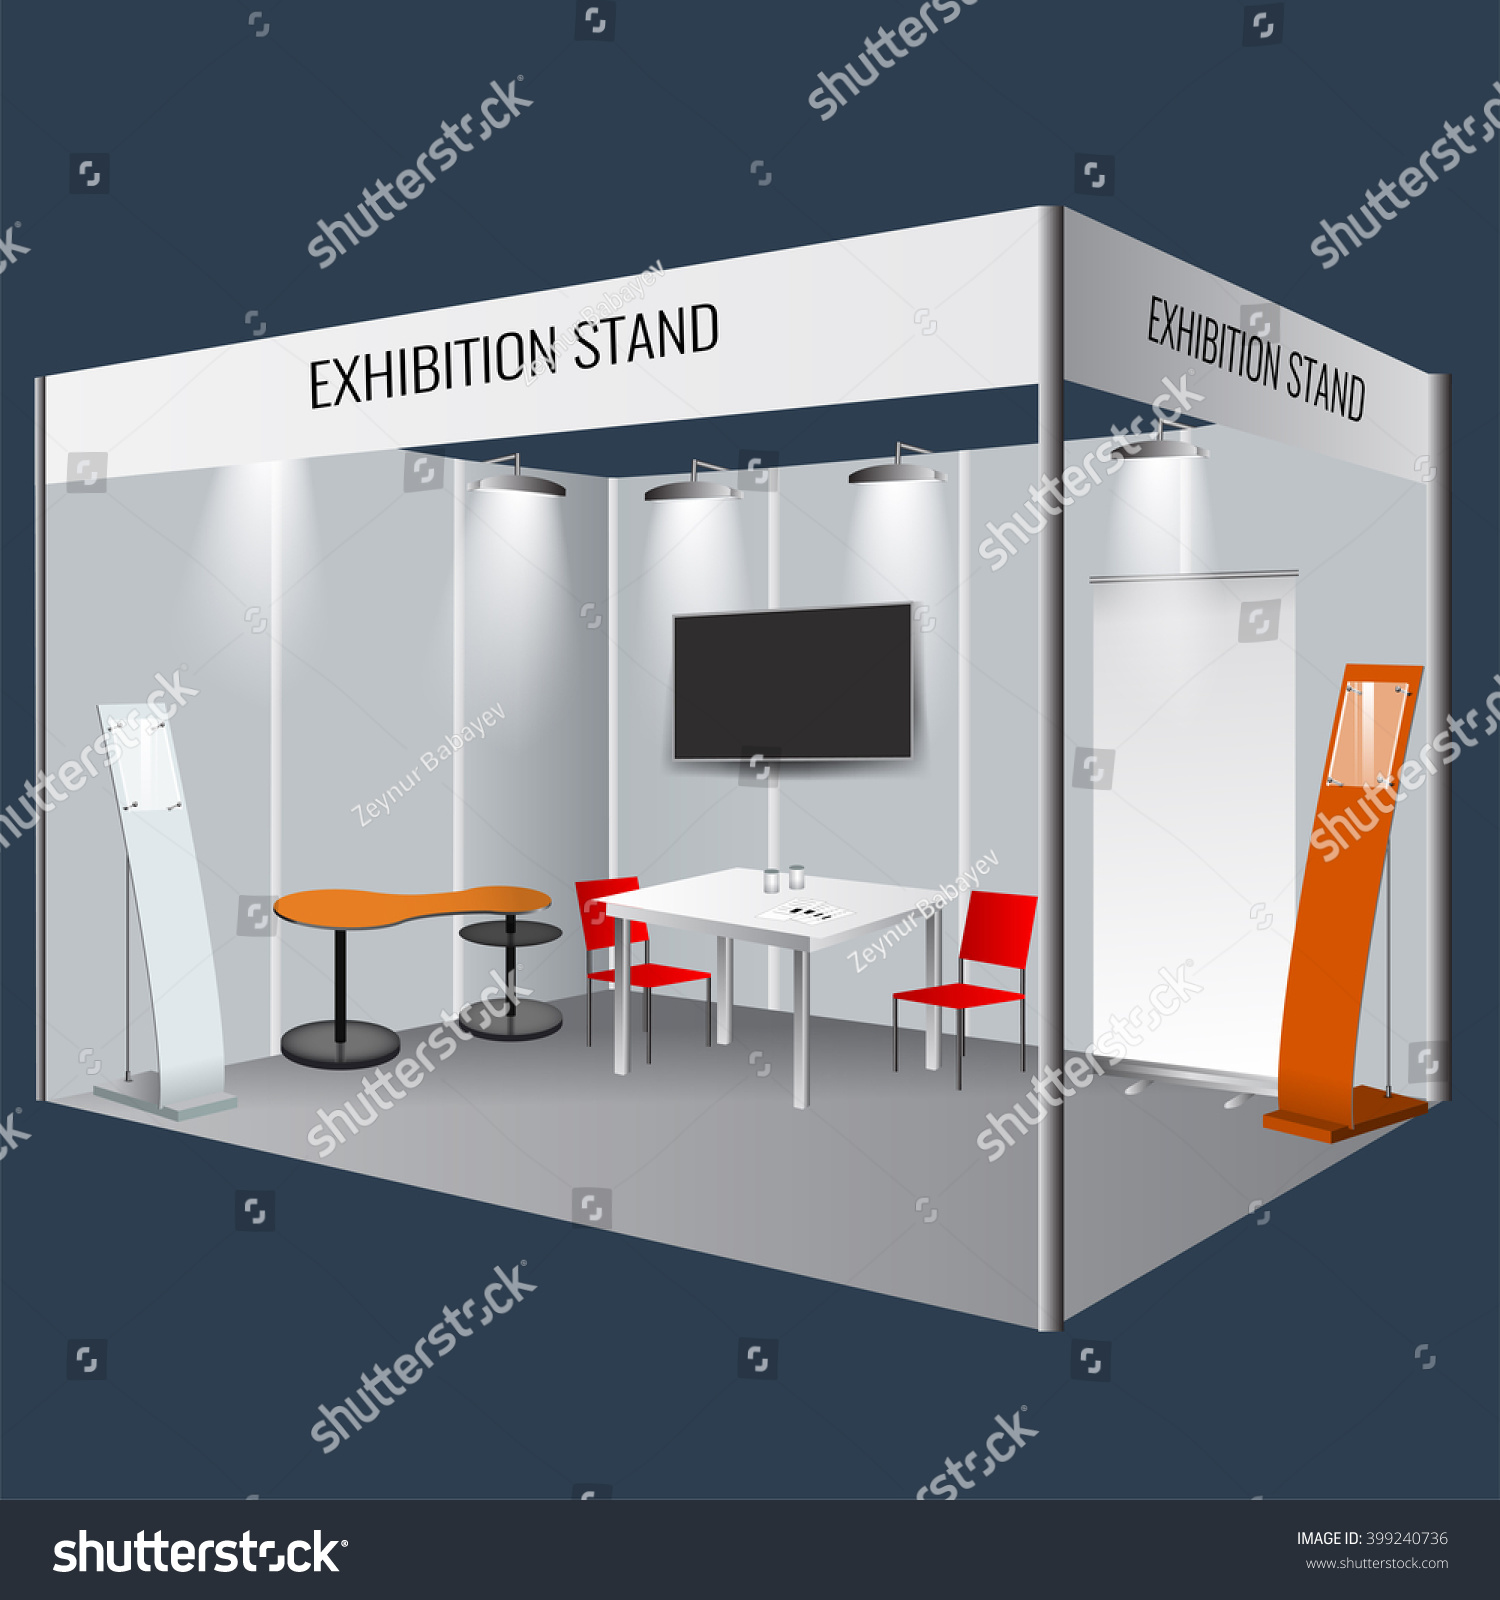 Creative Exhibition Stand : Illustrated unique creative exhibition stand display stock